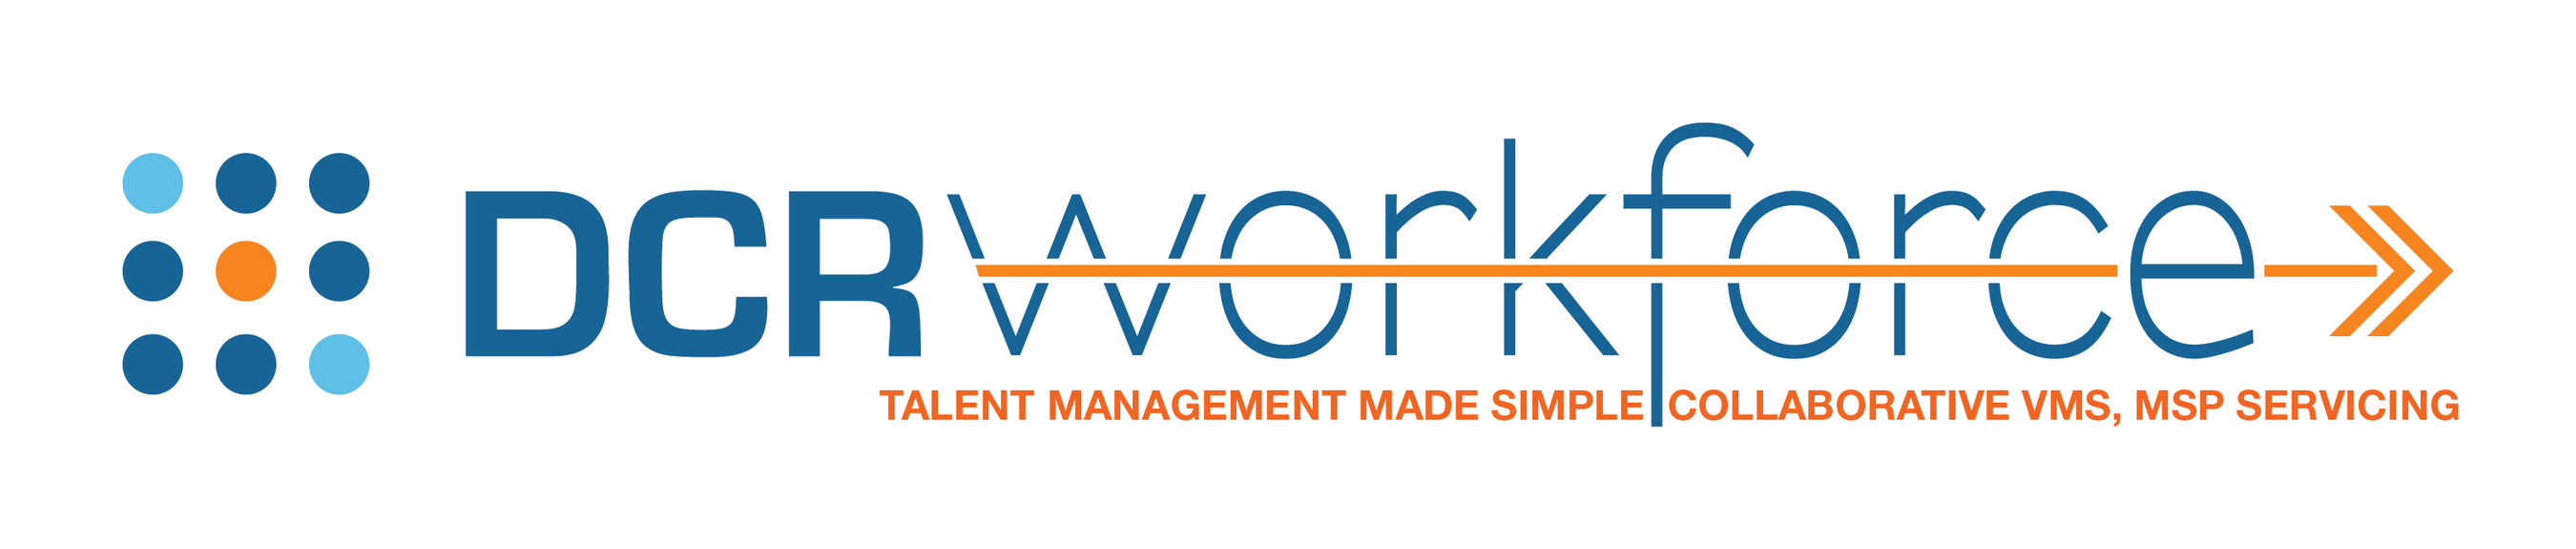 Dcr workforce named siia software codie award finalist for for Www workforcescheduling com jewelry tv